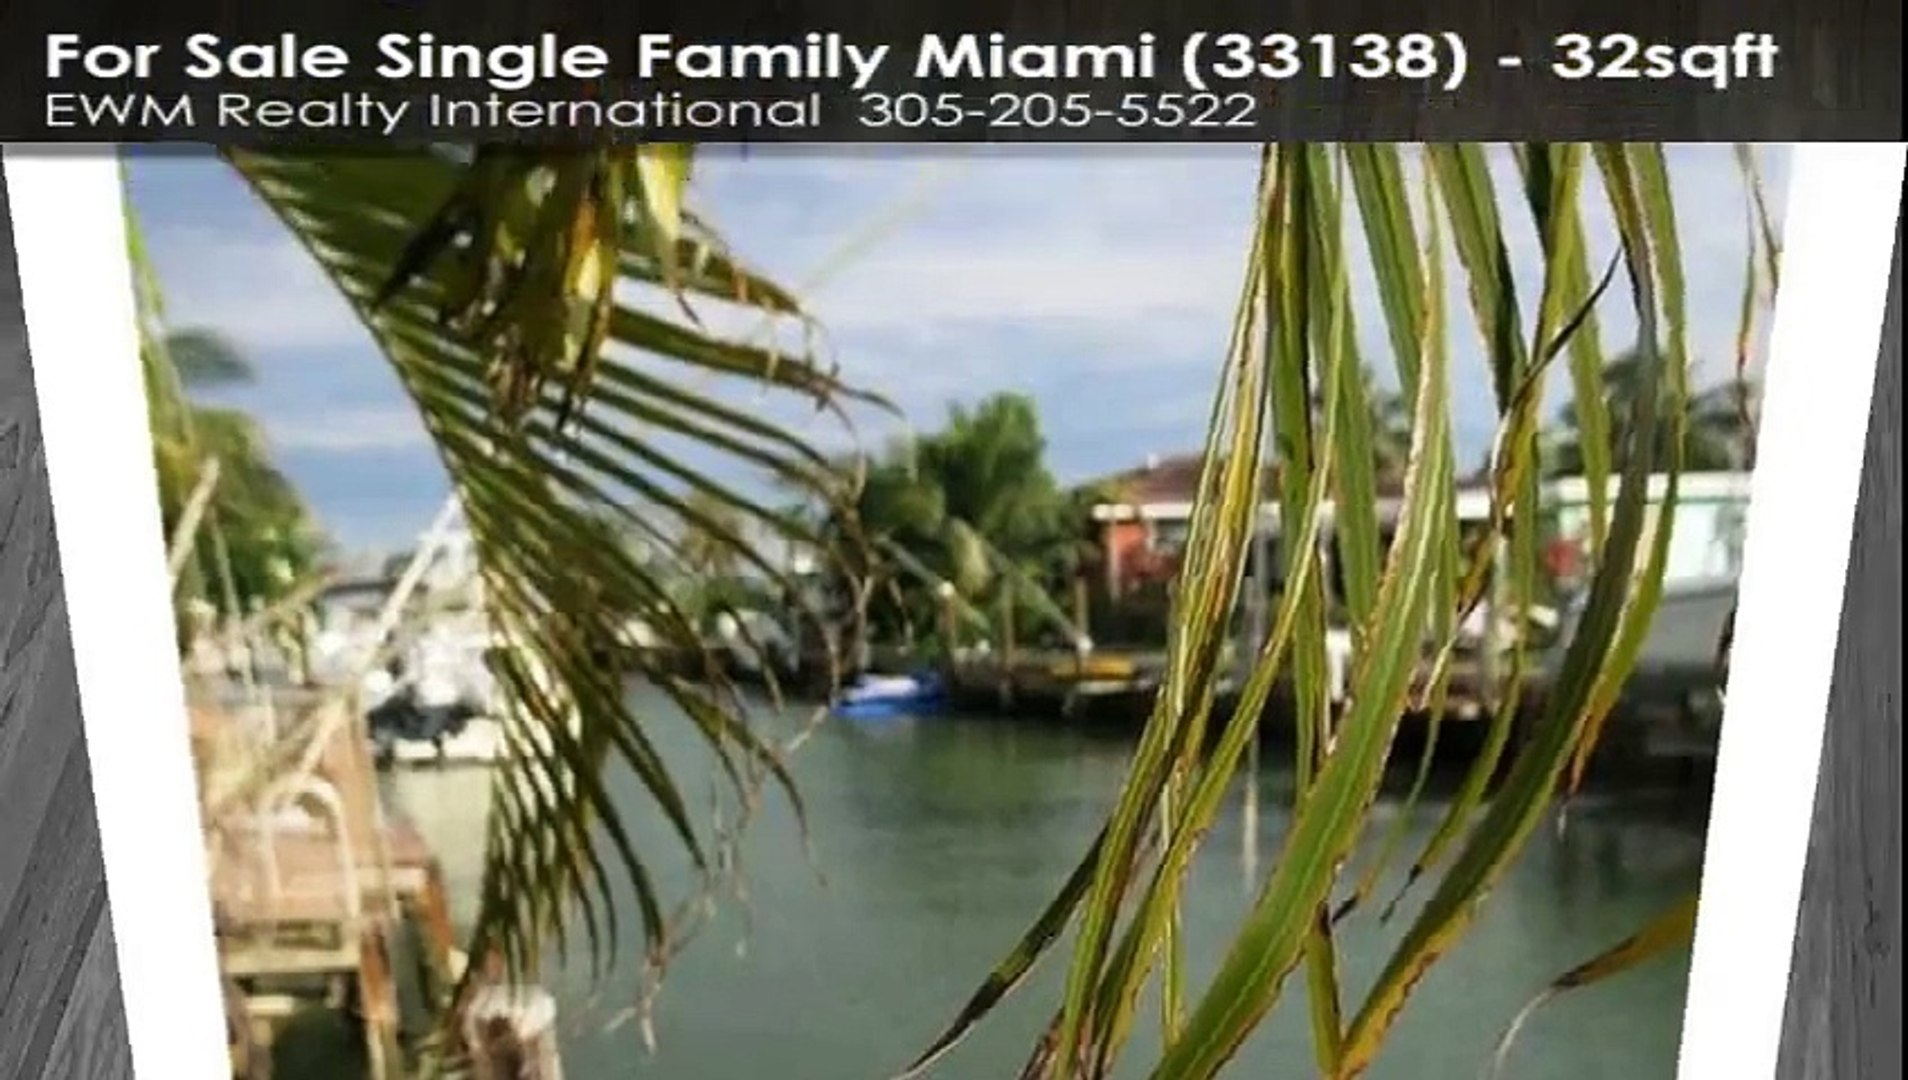 Single Family For Sale: 1210 Northeast 82nd St Miami, FL $899000